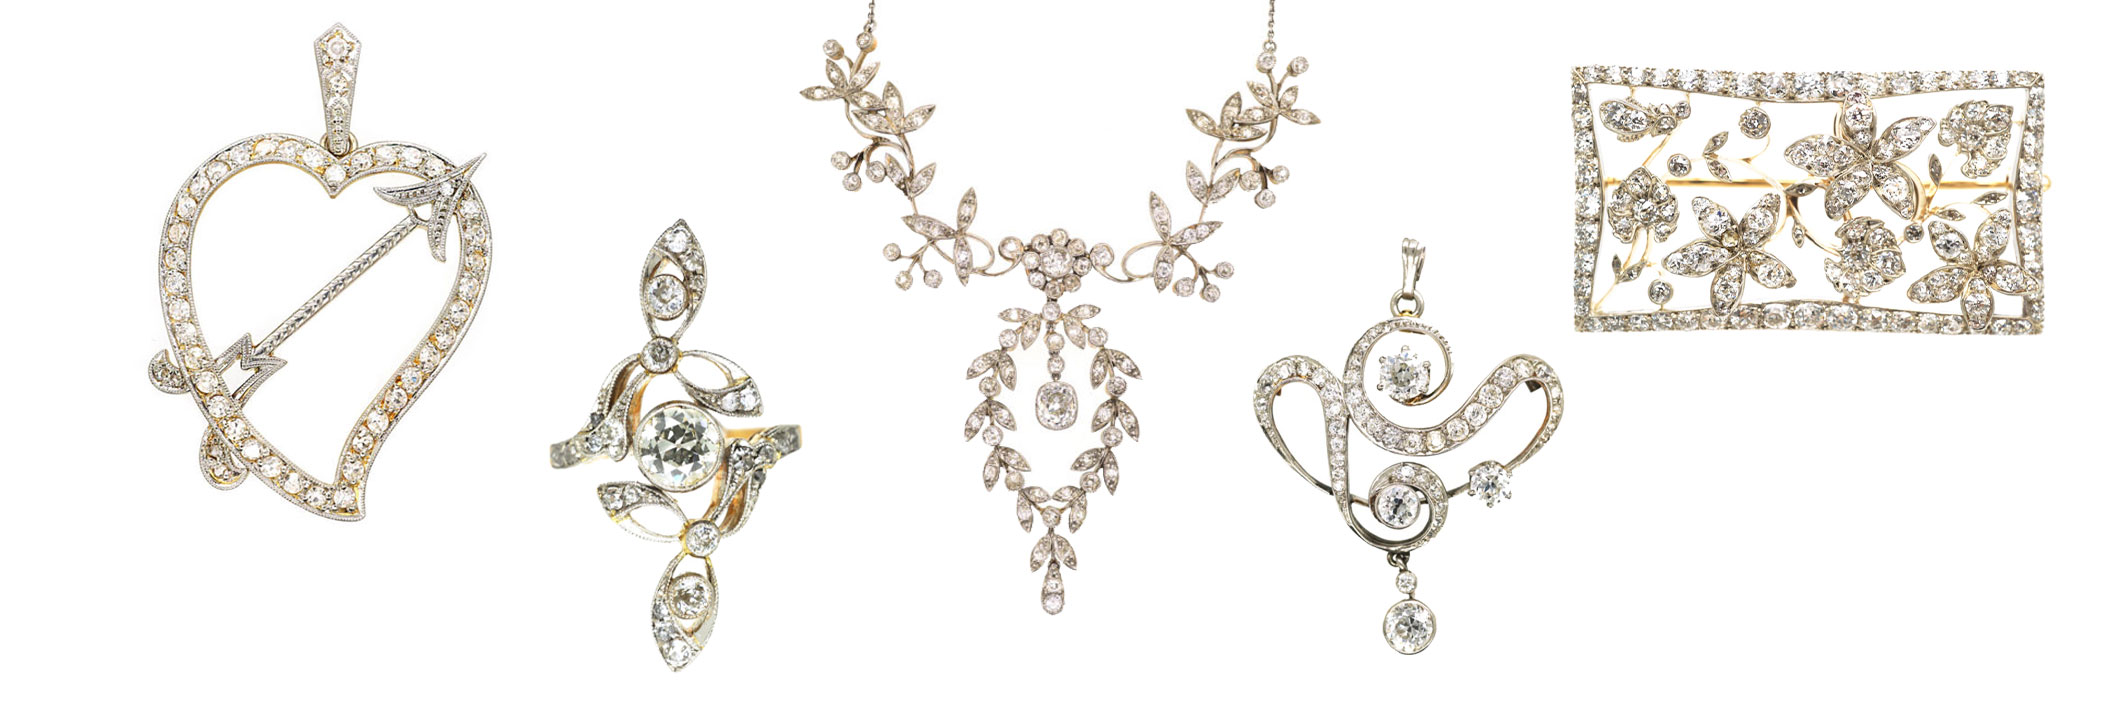 Edwardian filigree jewellery